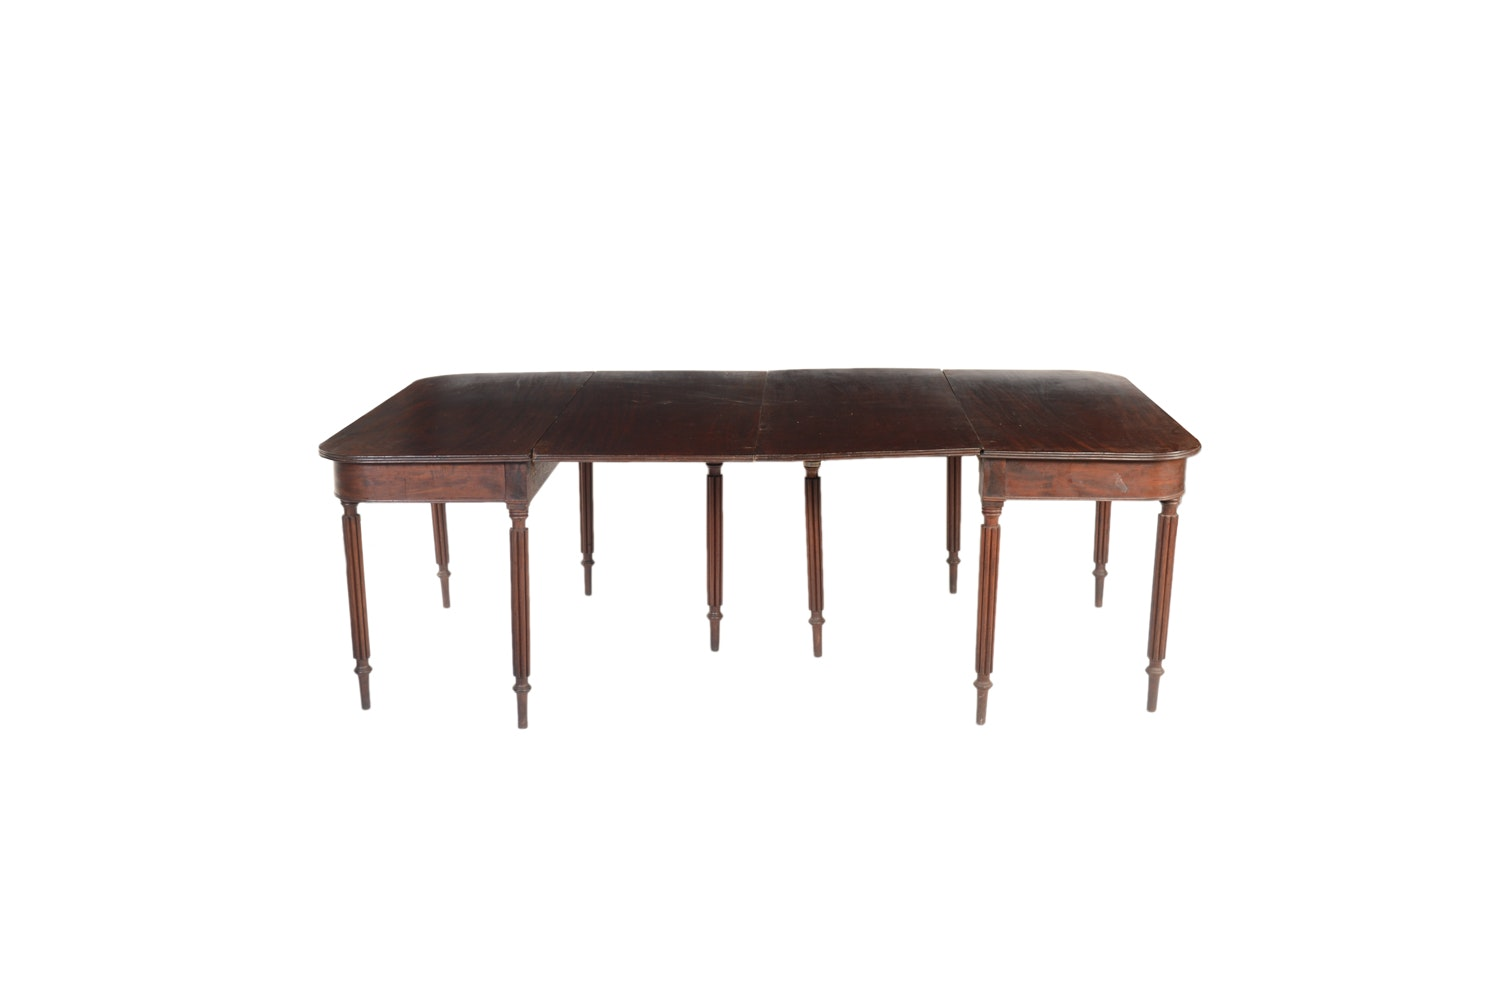 19th Century Federal Style Mahogany Dining Table